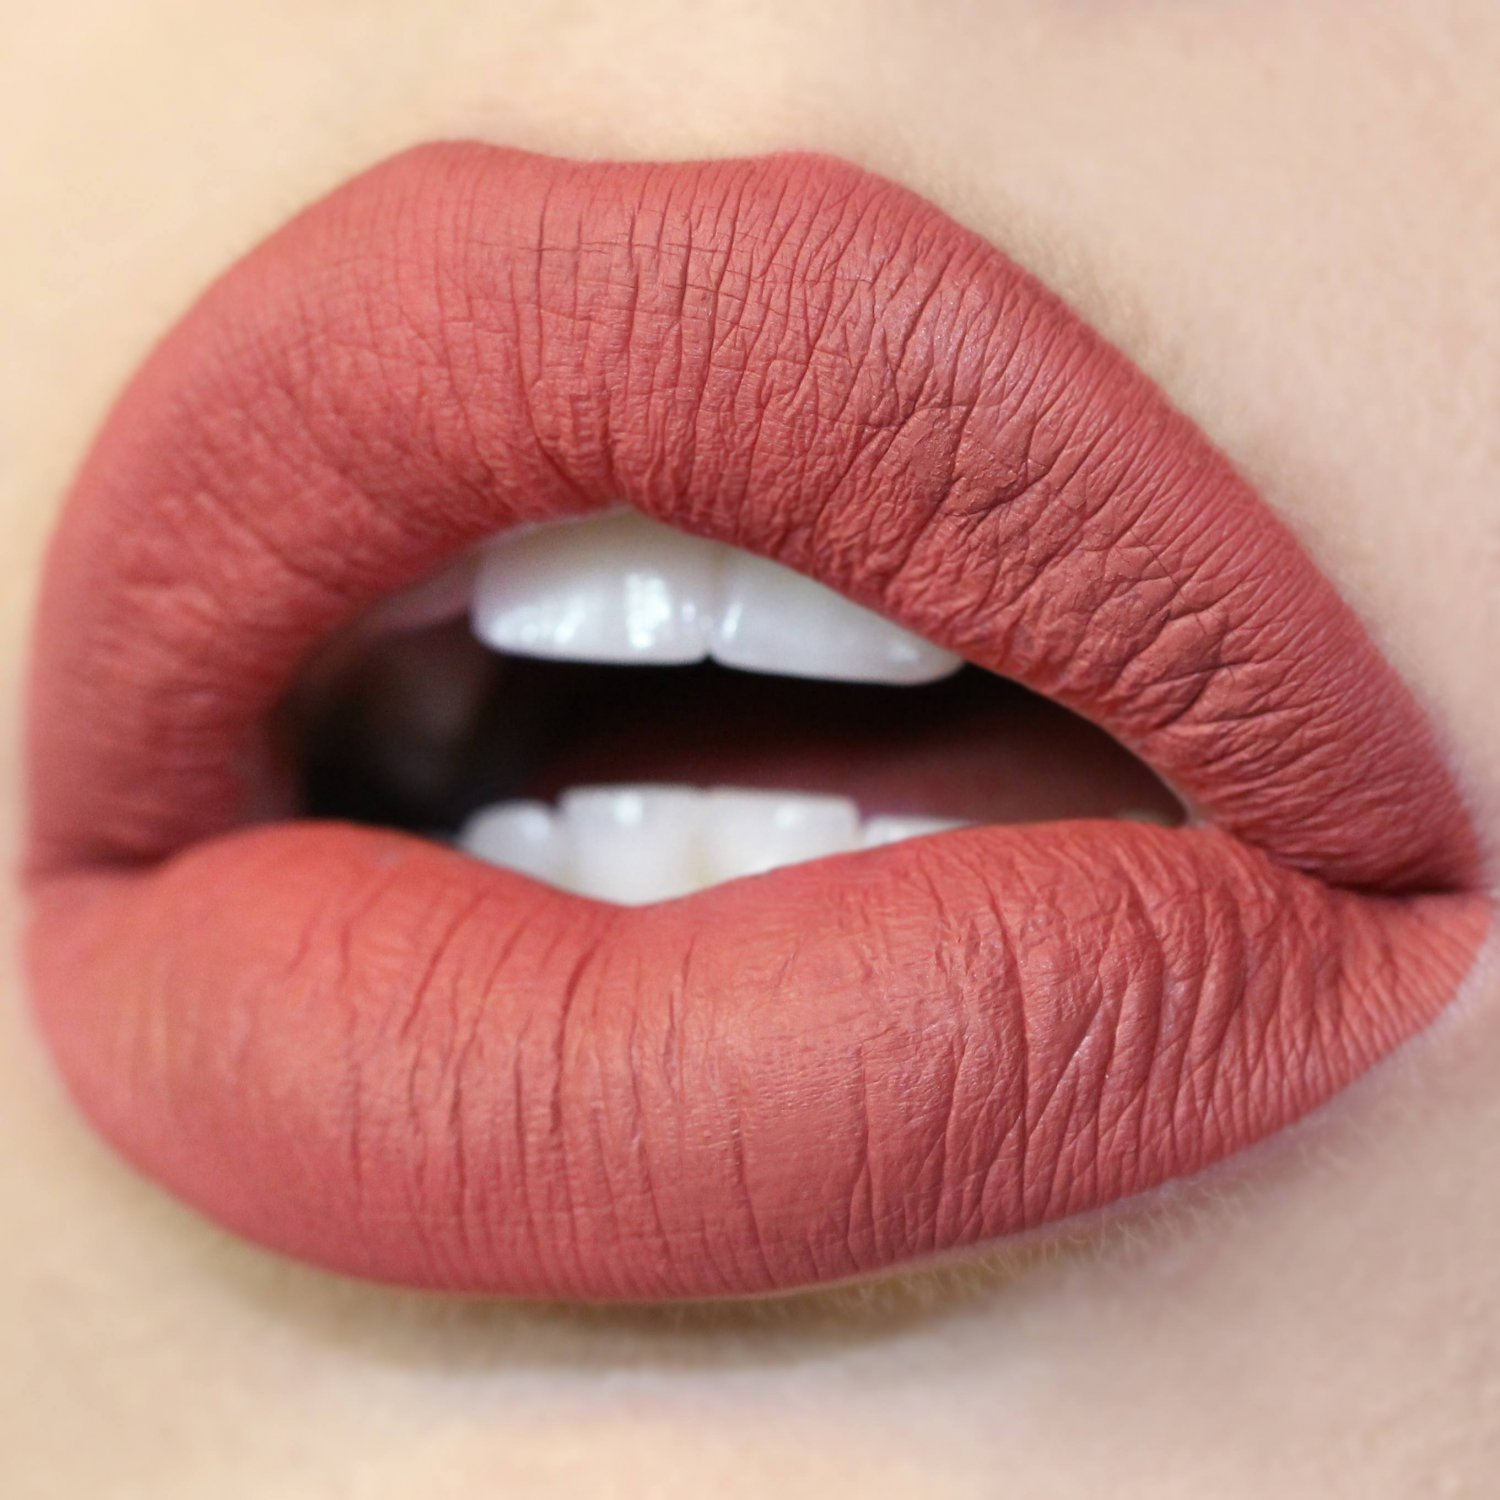 Matte Liquid Lipsticks Colourpop Ultra Lip -  Bumble